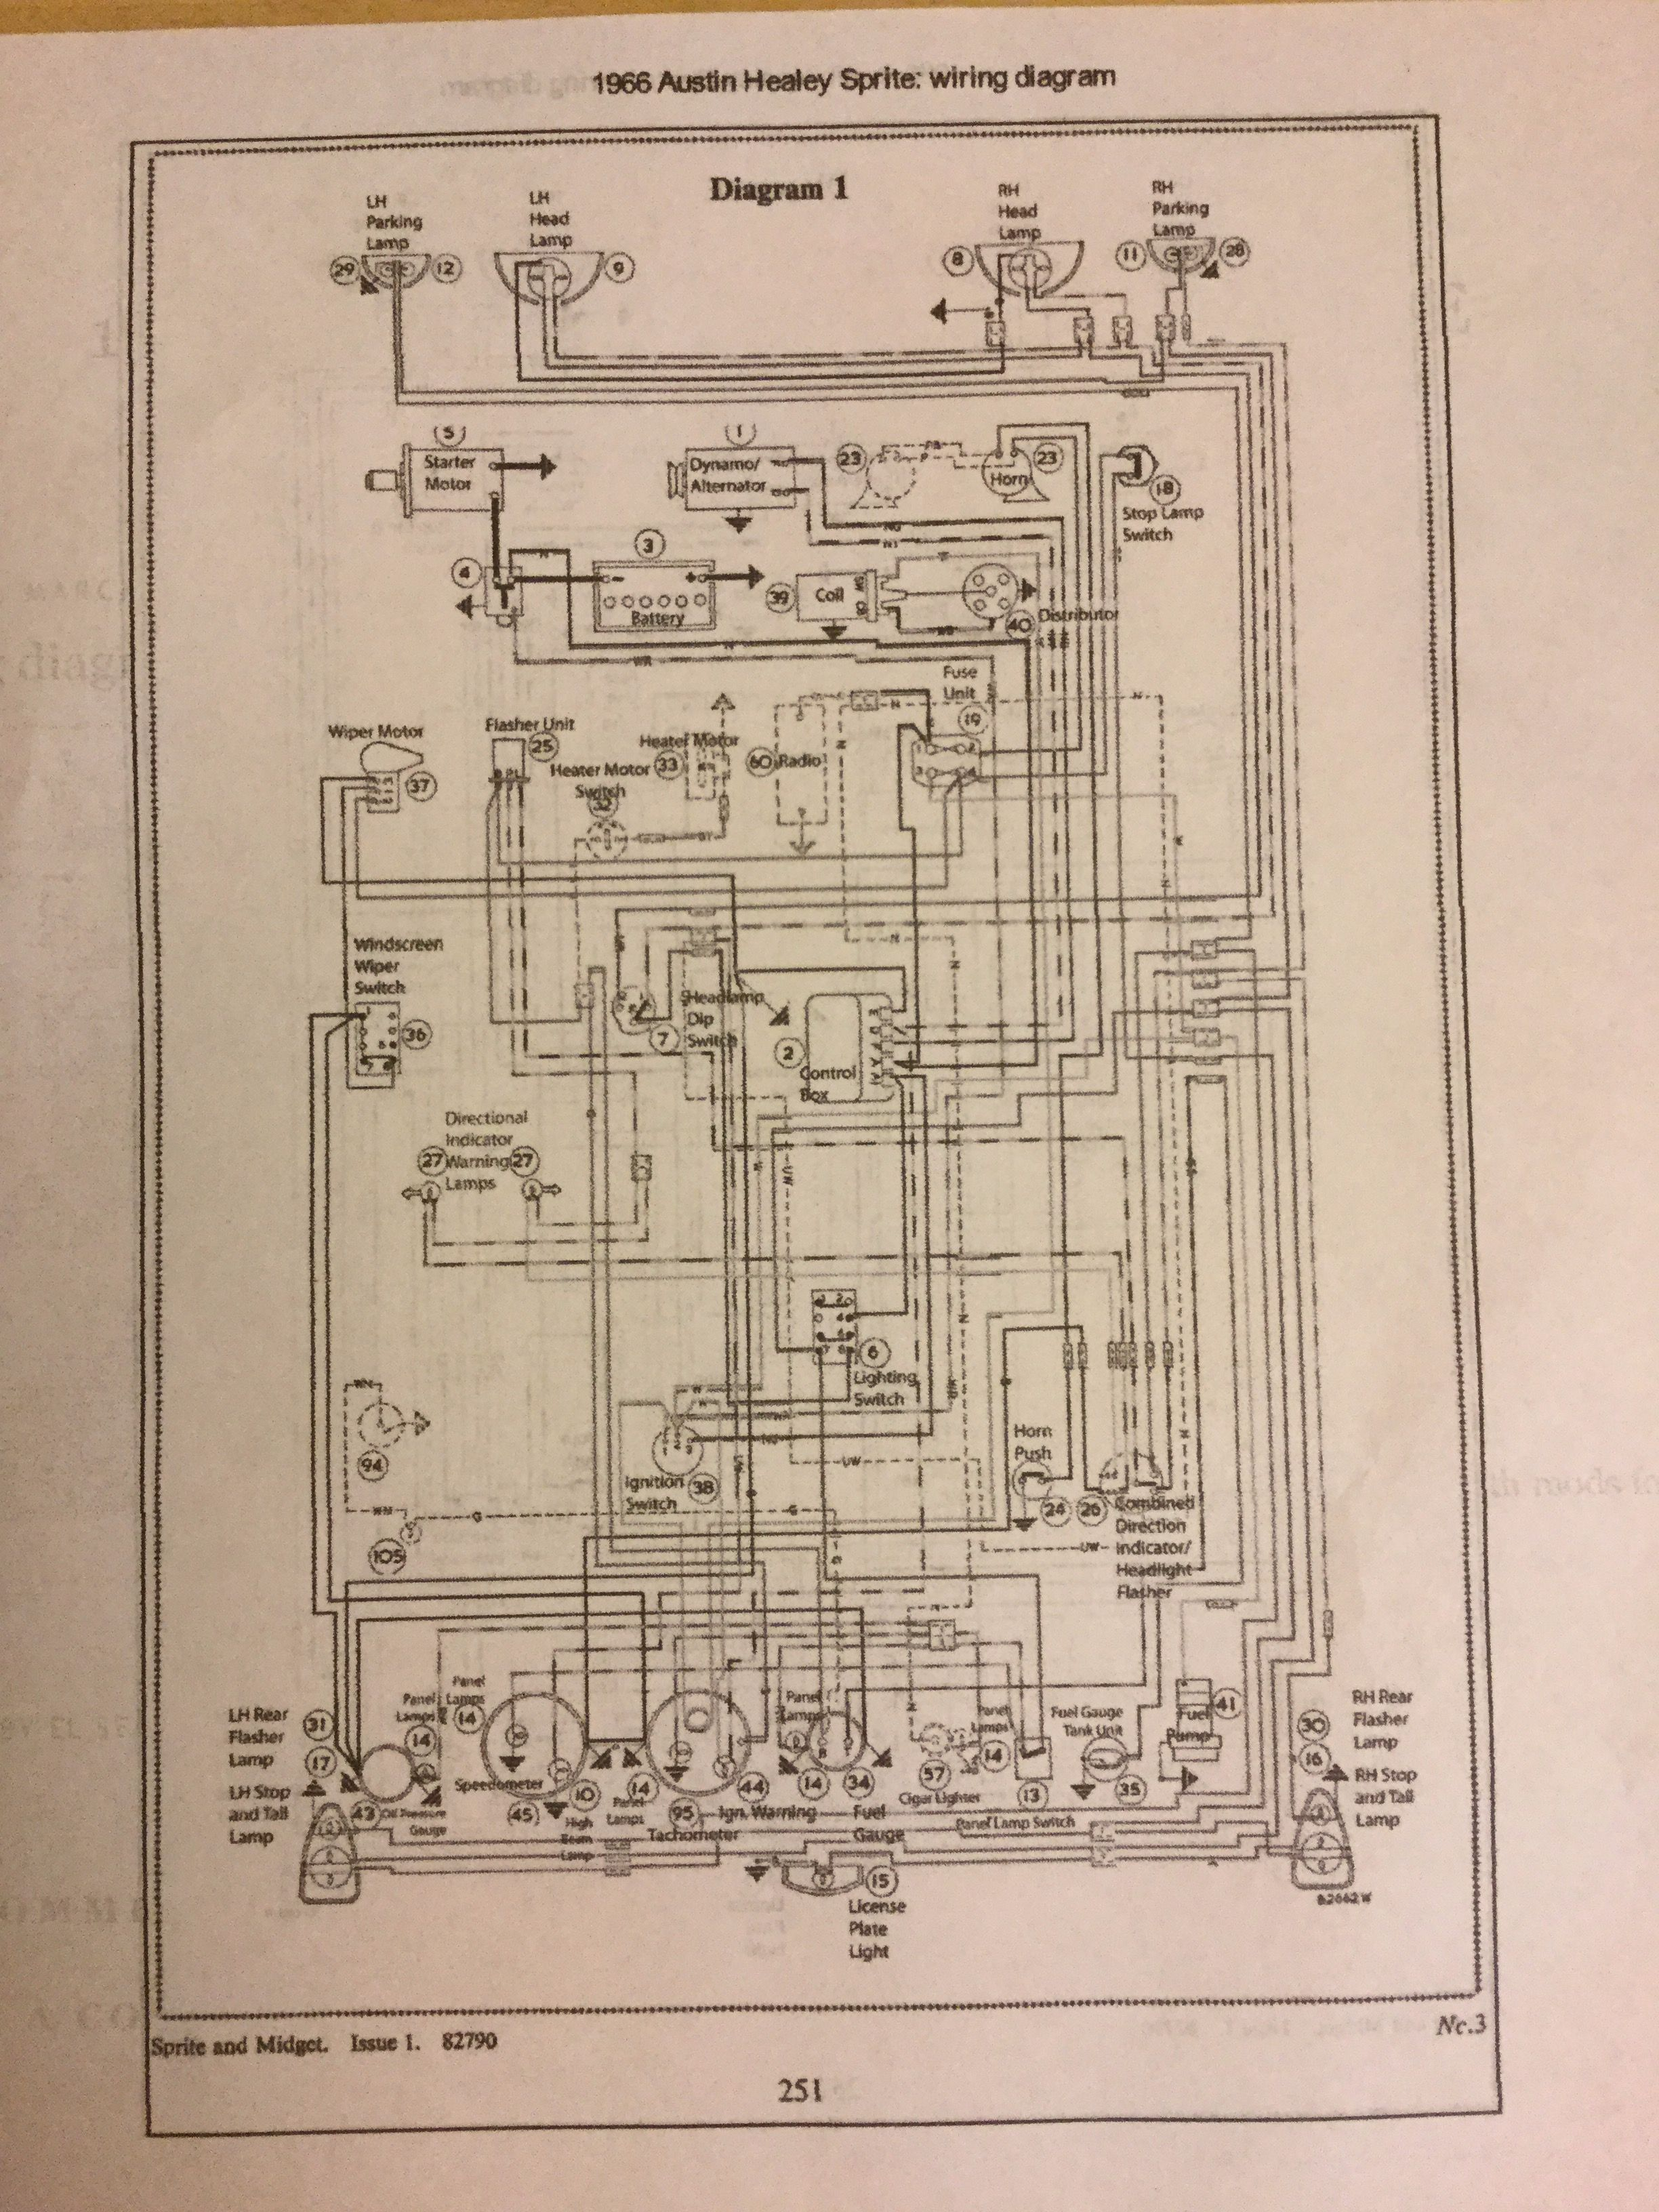 hight resolution of austin healey bugeye sprite wiring diagram simple wiring schema wiring house home austin healey fuel gauge wiring diagram